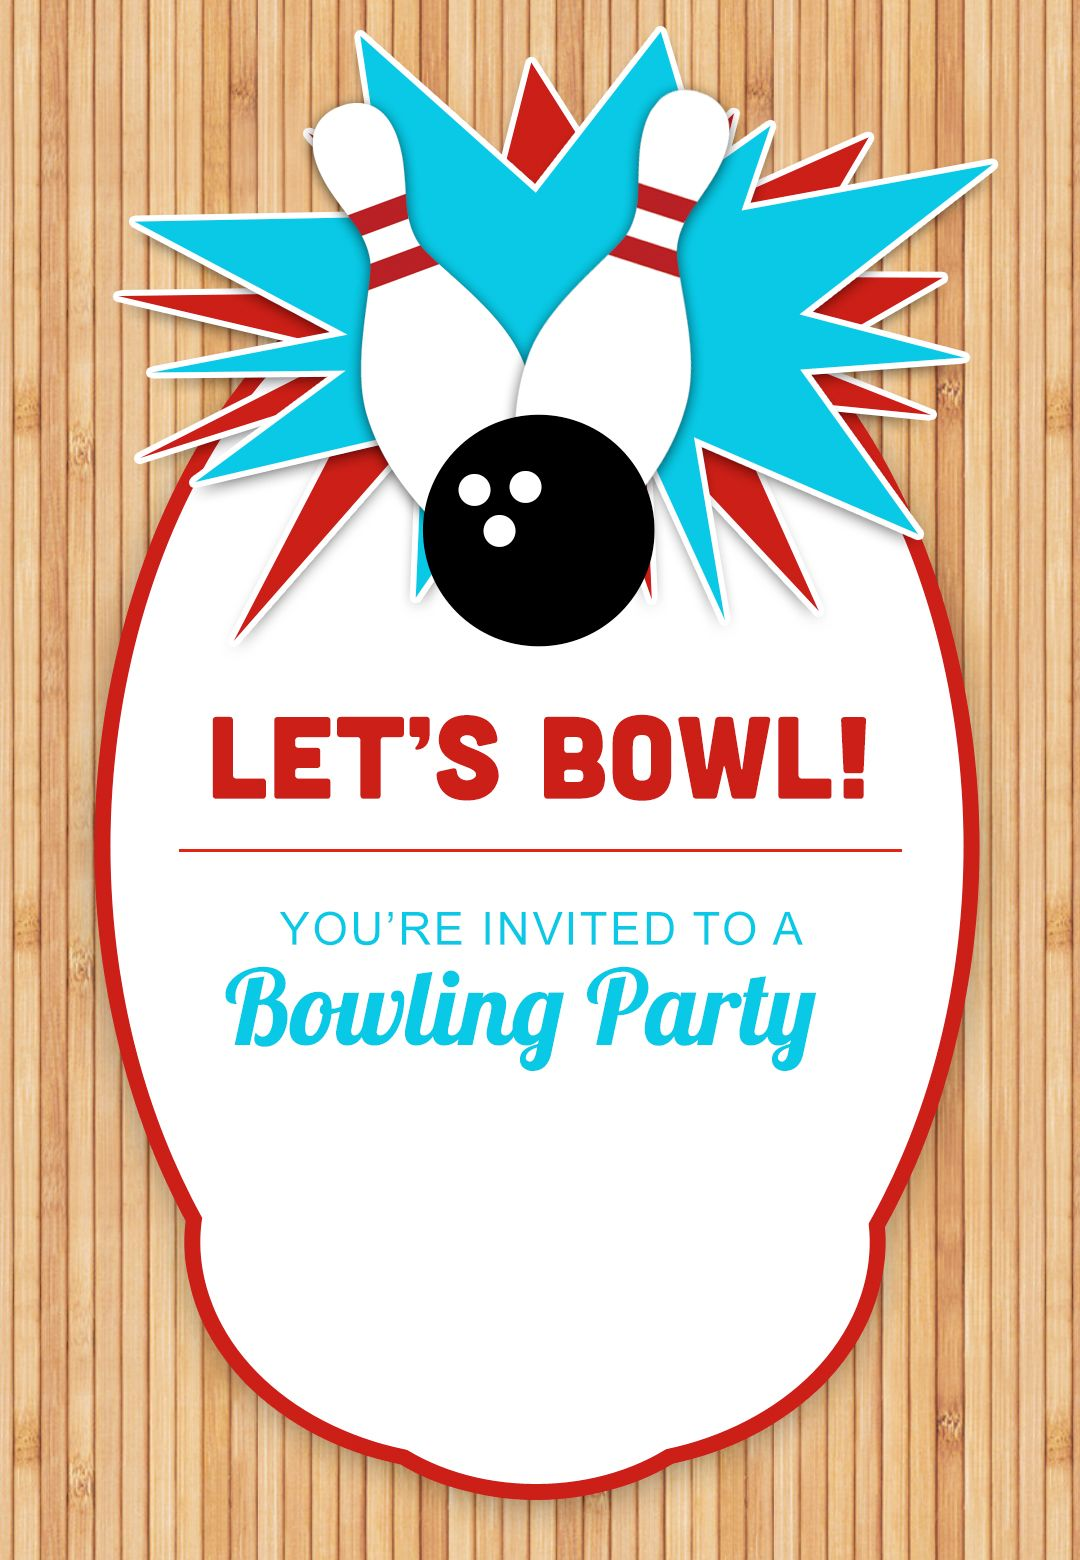 Bowling party free printable birthday invitation template bowling party free birthday invitation template greetings island stopboris